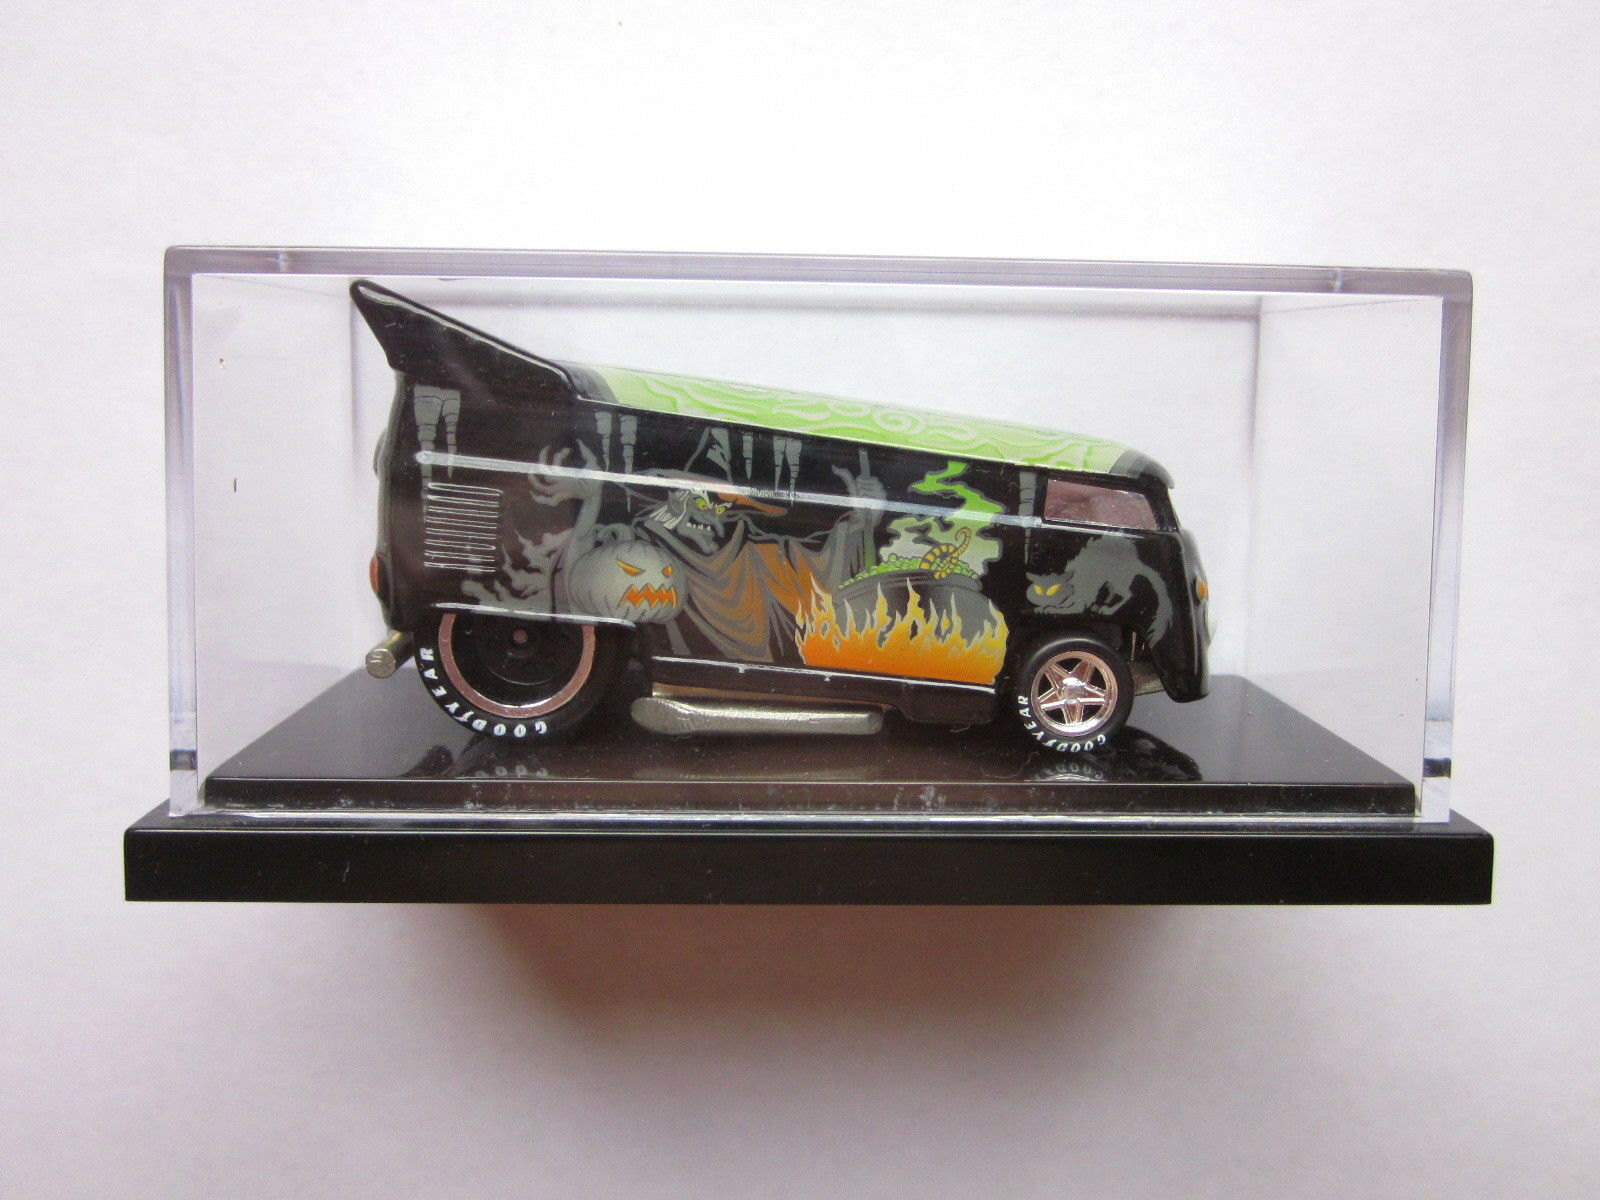 Hot Wheels Liberty promociones - 2005 Halloween Bruja Vw Drag Bus 30 1300 Bajo